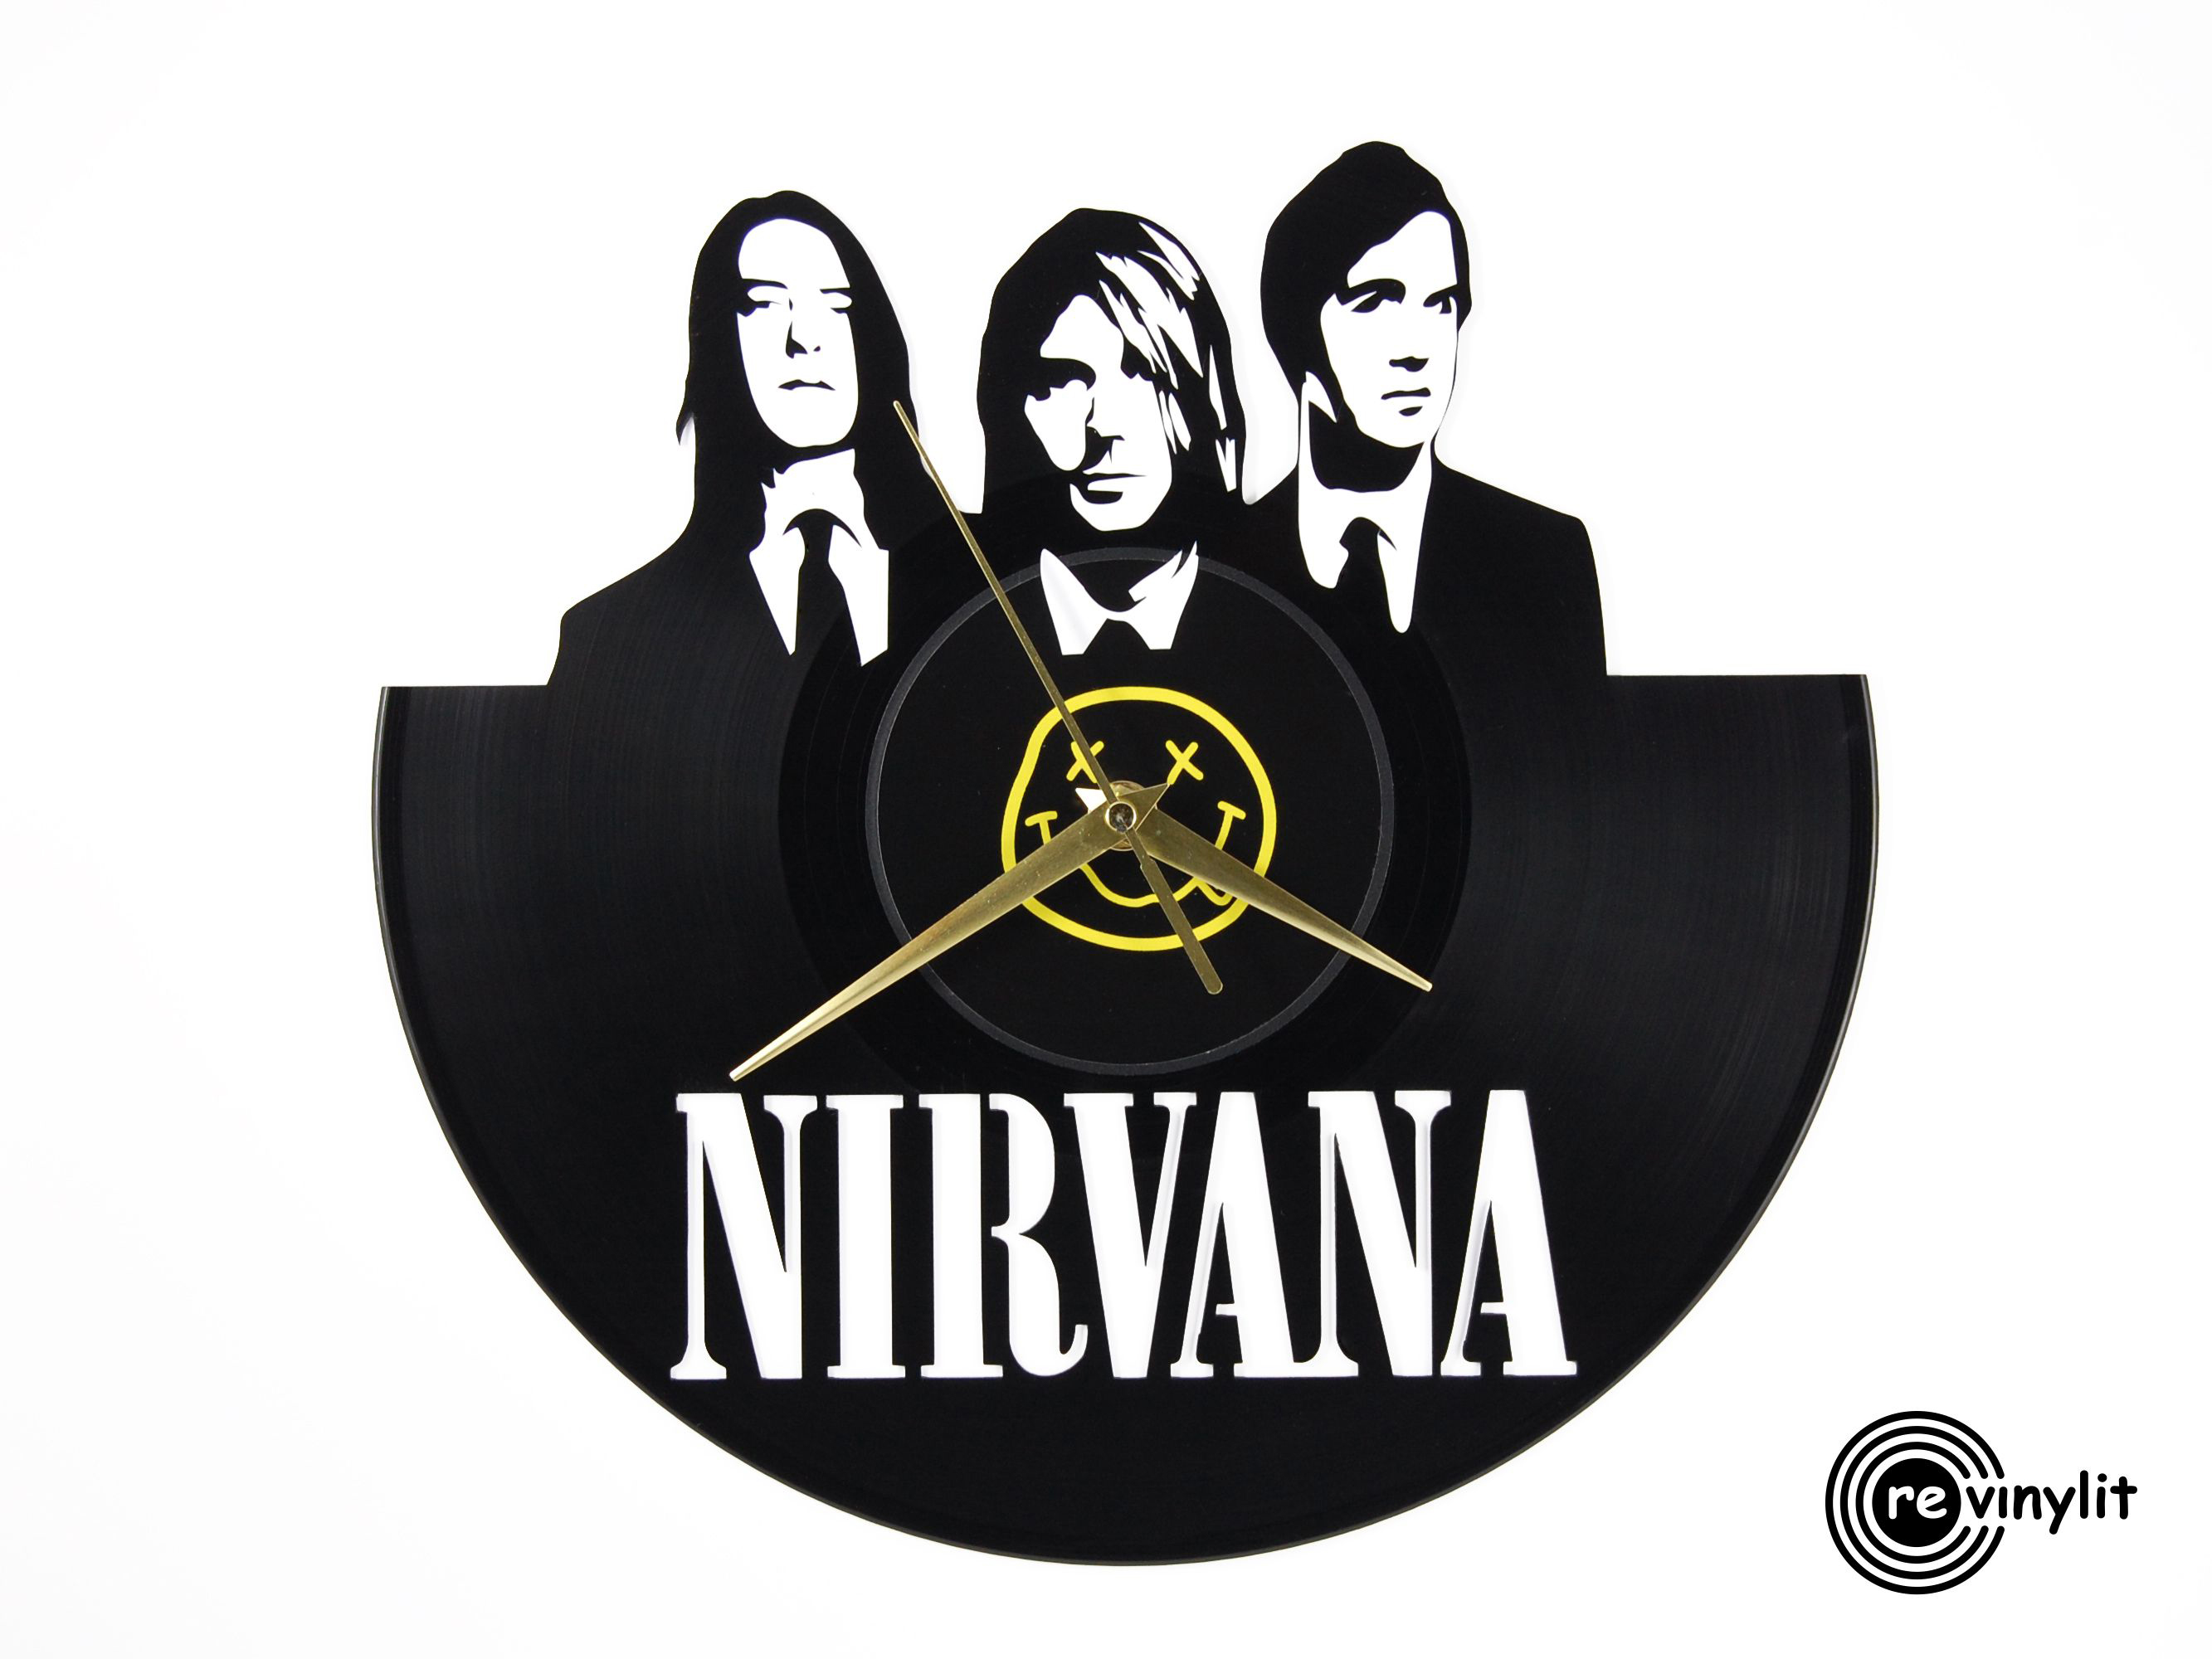 Nirvana vinyl record clock ||| Revinylit sold by Revinylit vinyl record  clocks